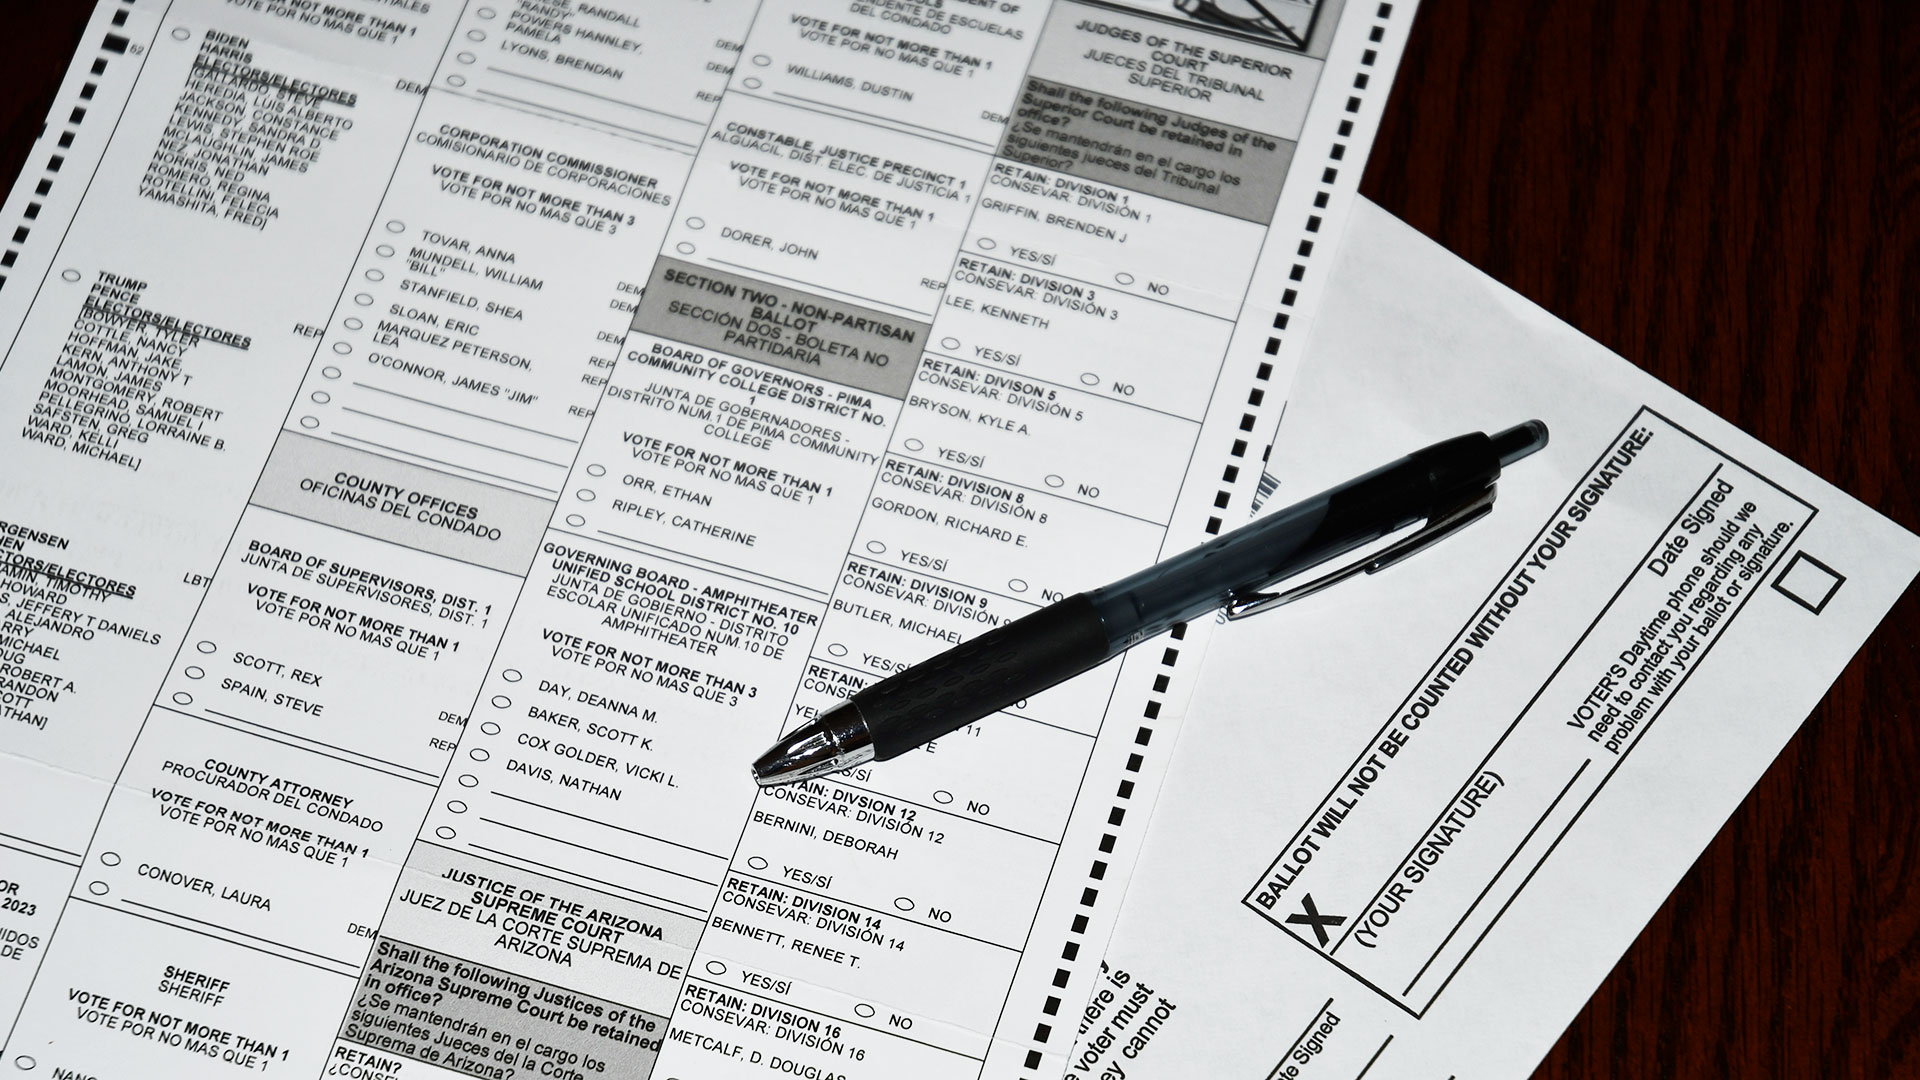 Your Vote 2020: Mail-In Ballot